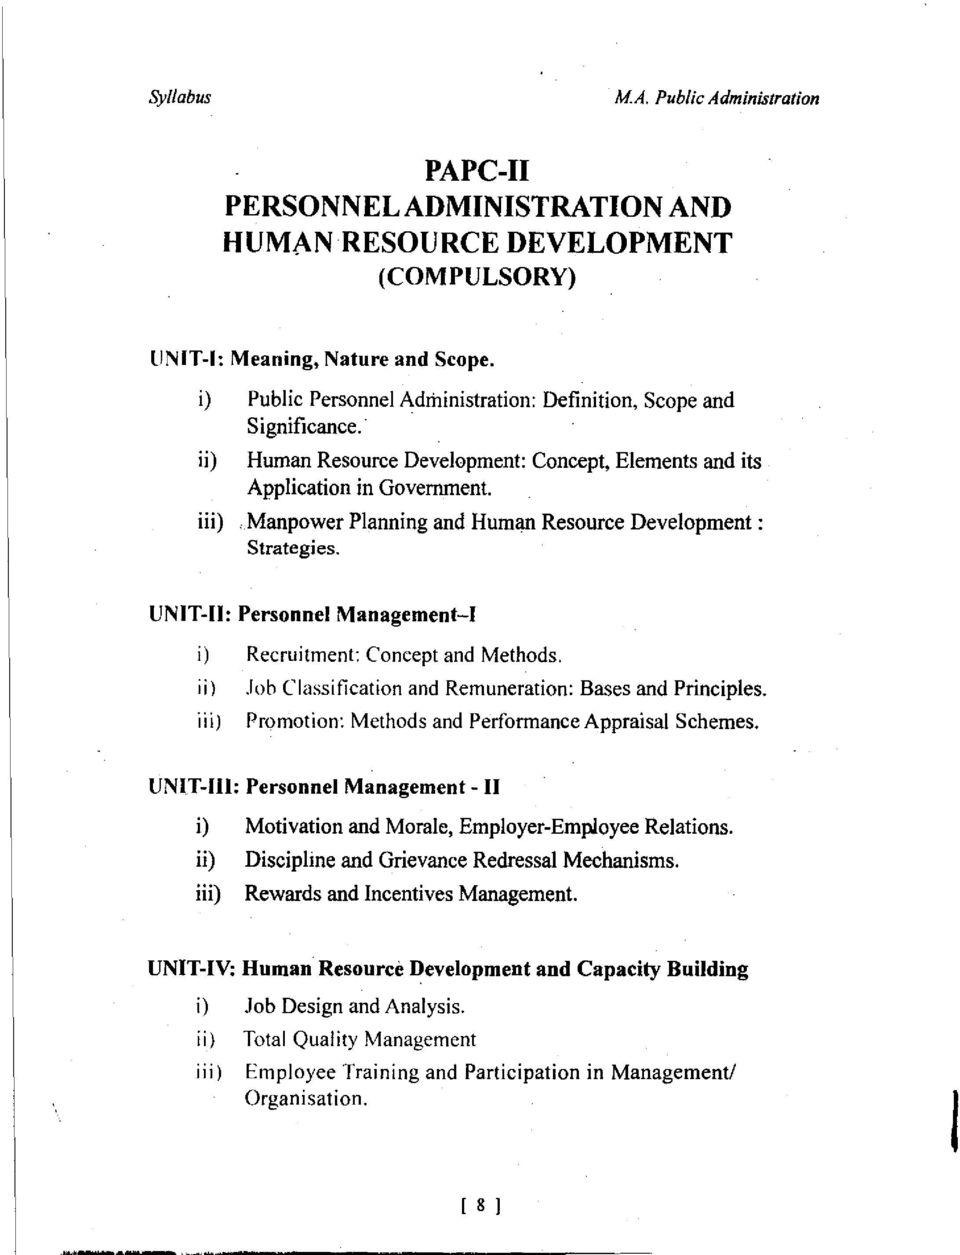 UNIT-II: Personnel Management I Recruitment: Concept and Methods. Job Classification and Remuneration: Bases and Principles. iii) Promotion: Methods and Performance Appraisal Schemes.